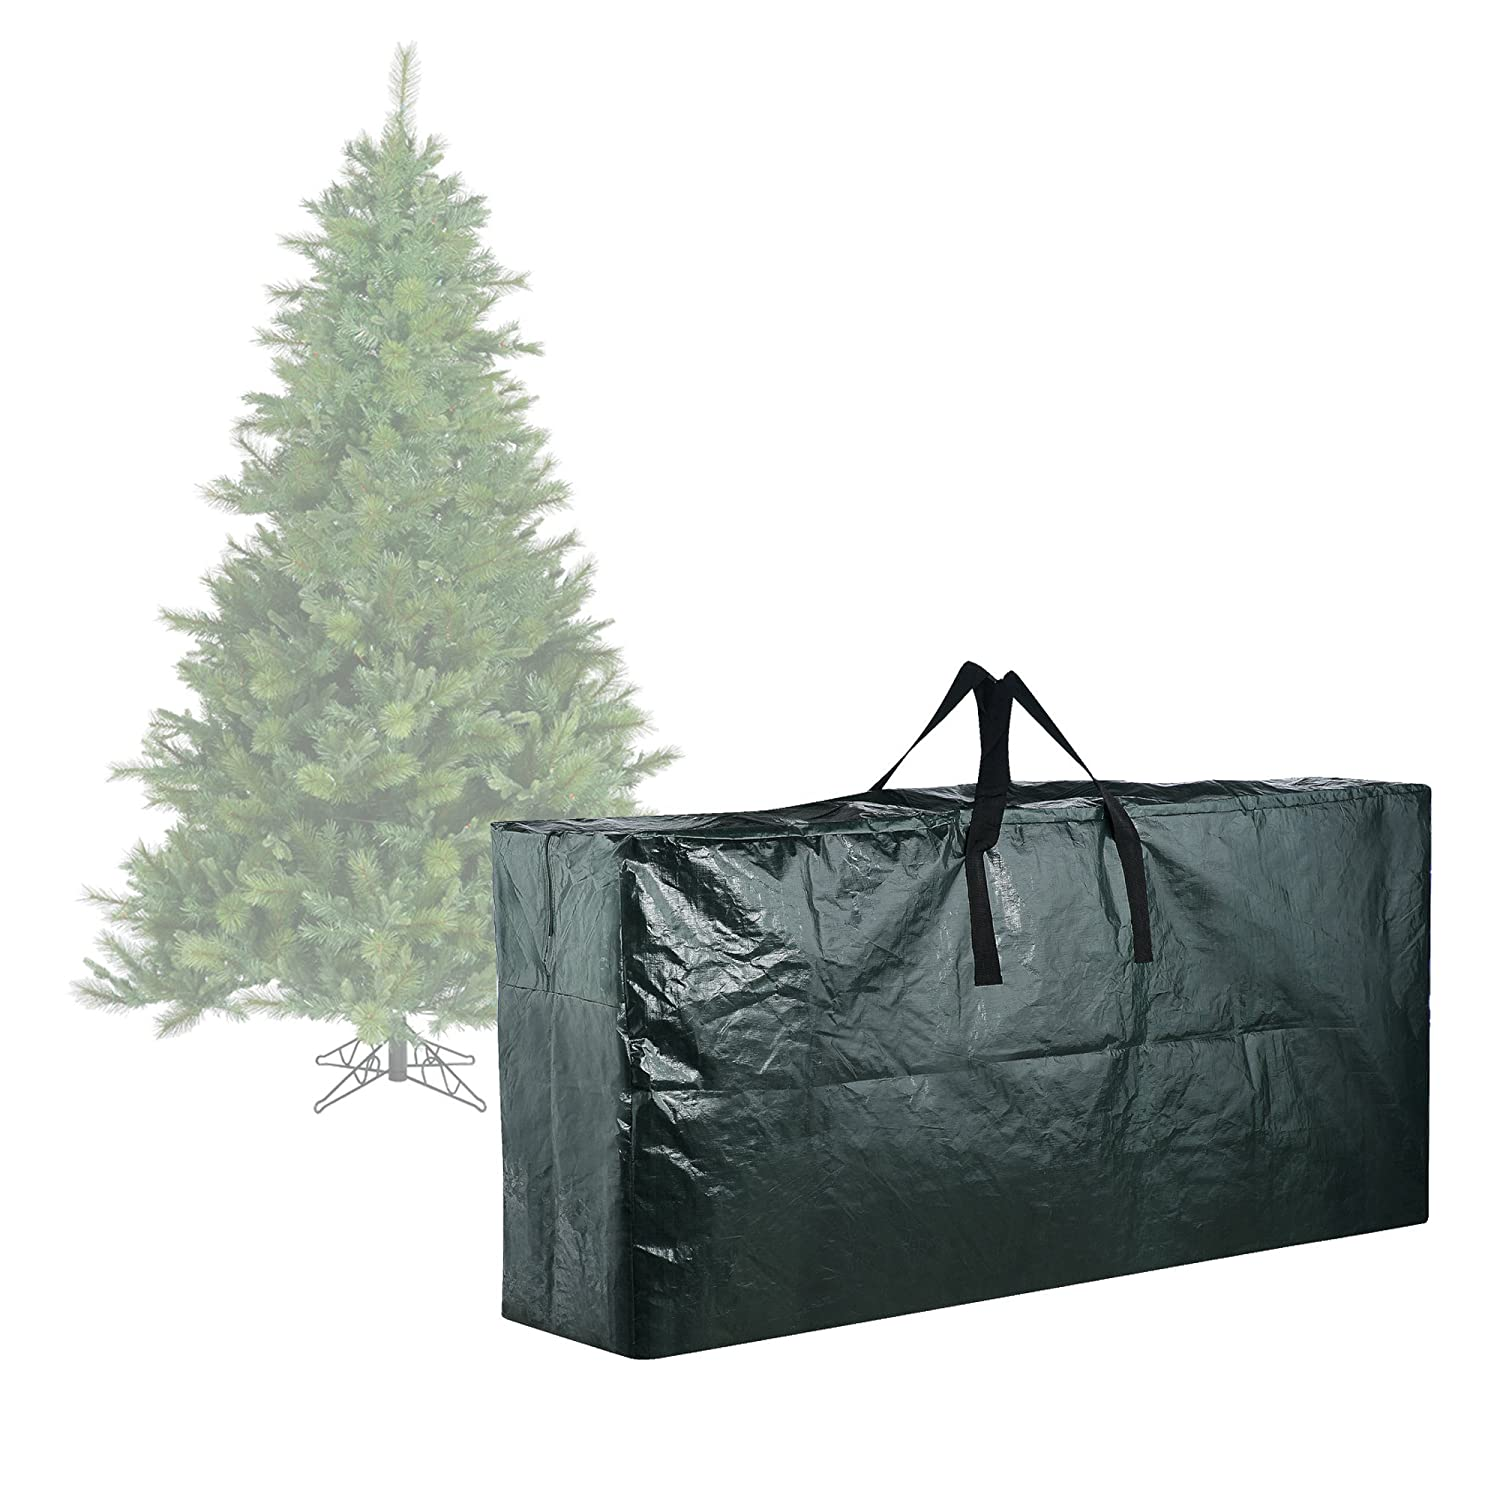 amazoncom elf stor premium green christmas tree bag holiday extra large for up to 9 tree storage home kitchen - Large Christmas Tree